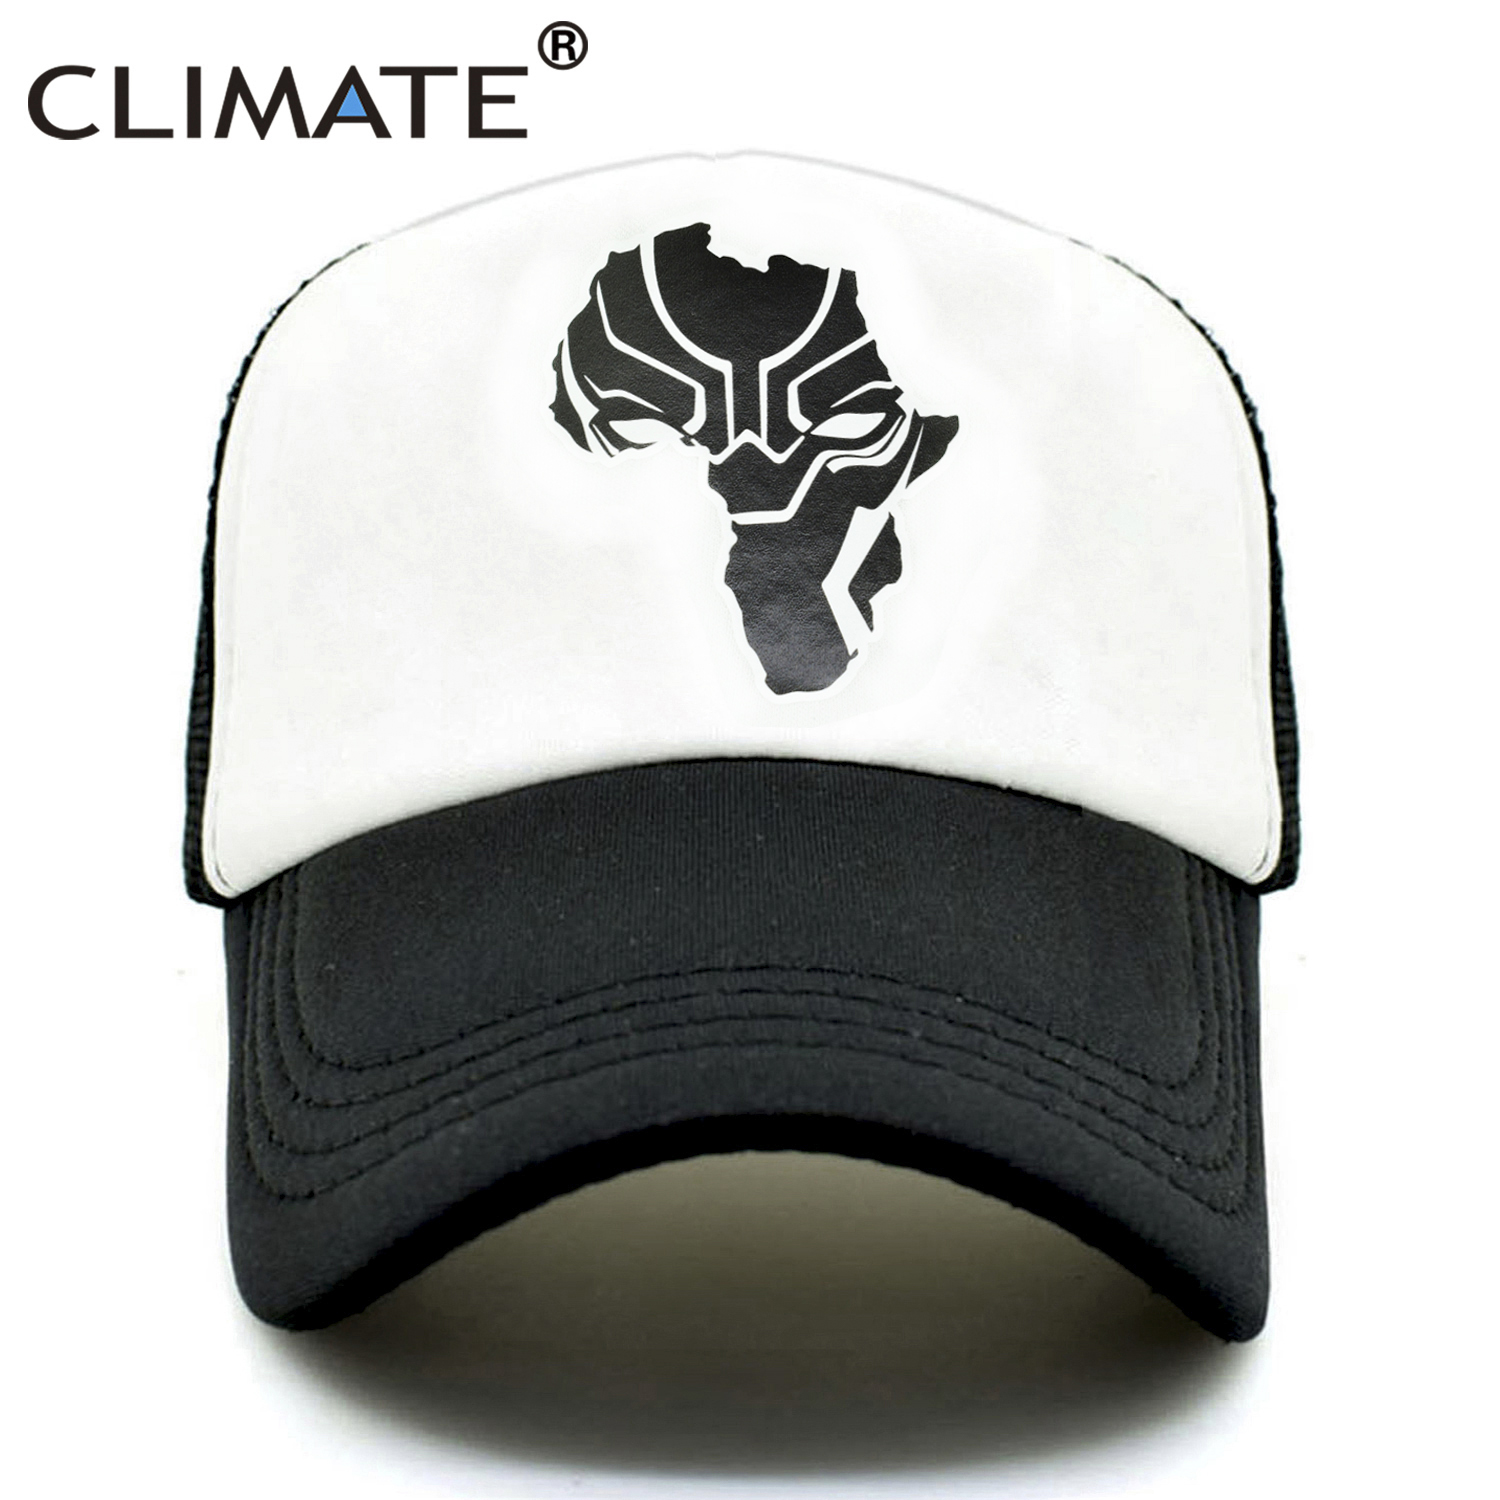 CLIMATE Wakanda Black Panther Caps Hat Men Women Trucker Cap Cool Summer  Caps Super Hero Adjustable Baseball Mesh Cap Hat Men-in Baseball Caps from  Apparel ... adaec55eeb85